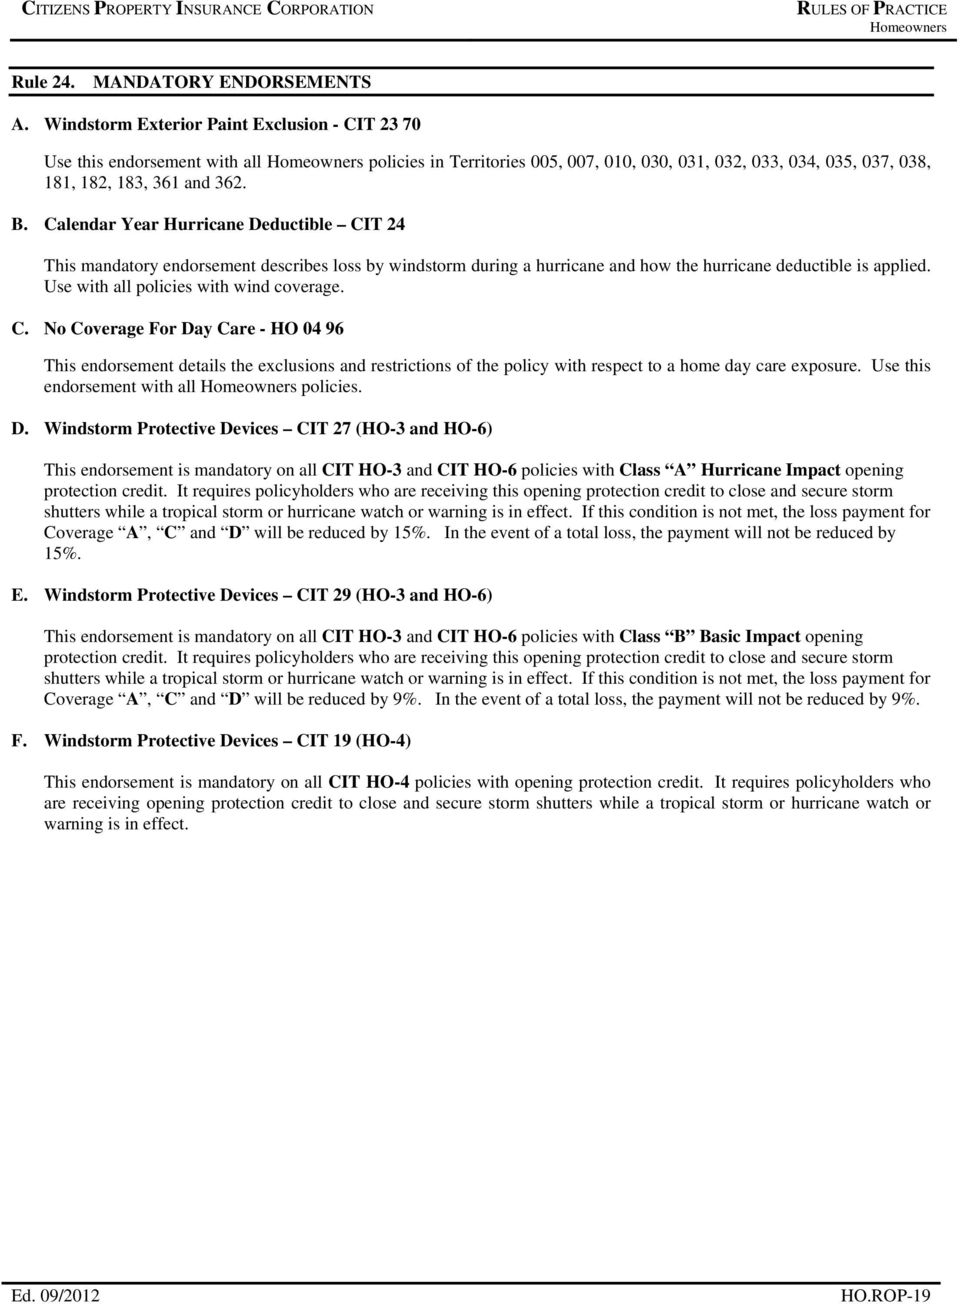 Rules Of Practice Table Of Contents Personal - Pdf Free Download